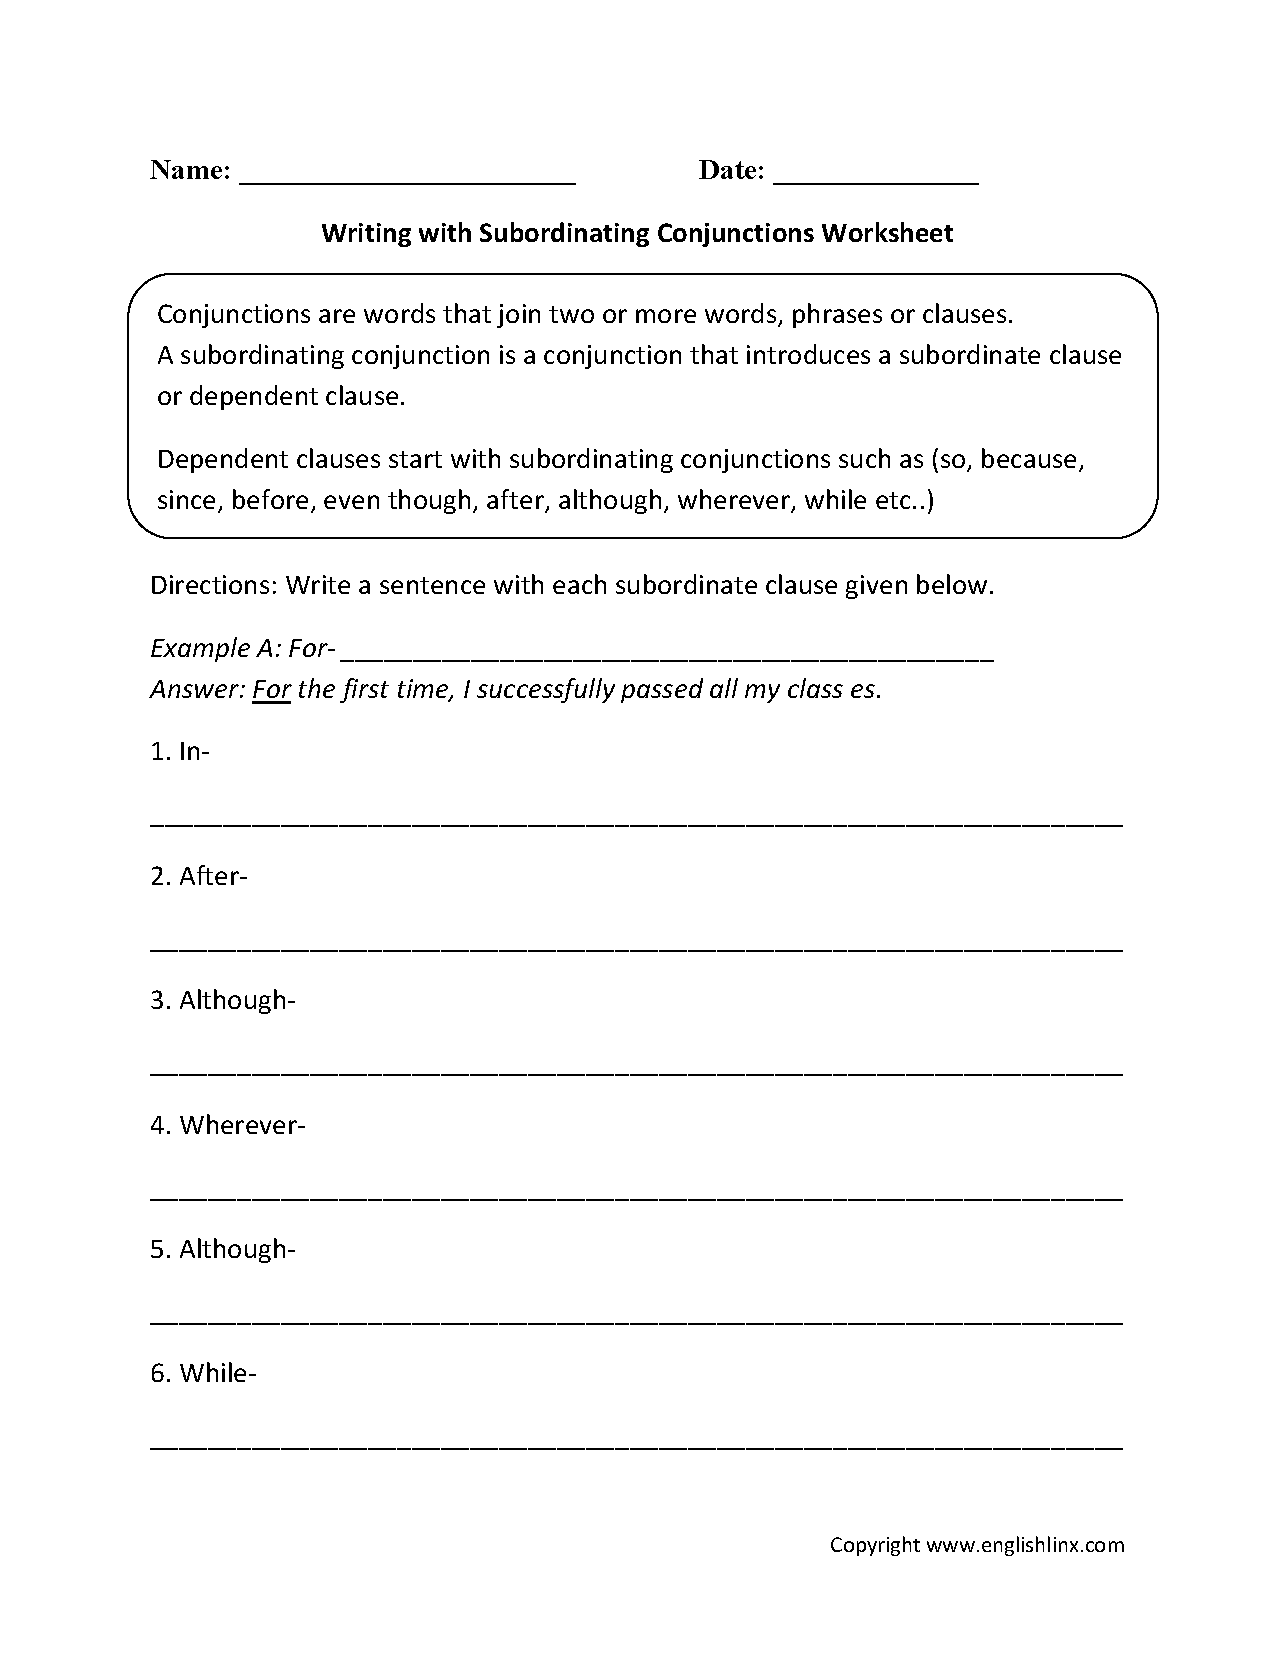 Worksheets Fanboys Grammar Worksheet englishlinx com conjunctions worksheets subordinating worksheets